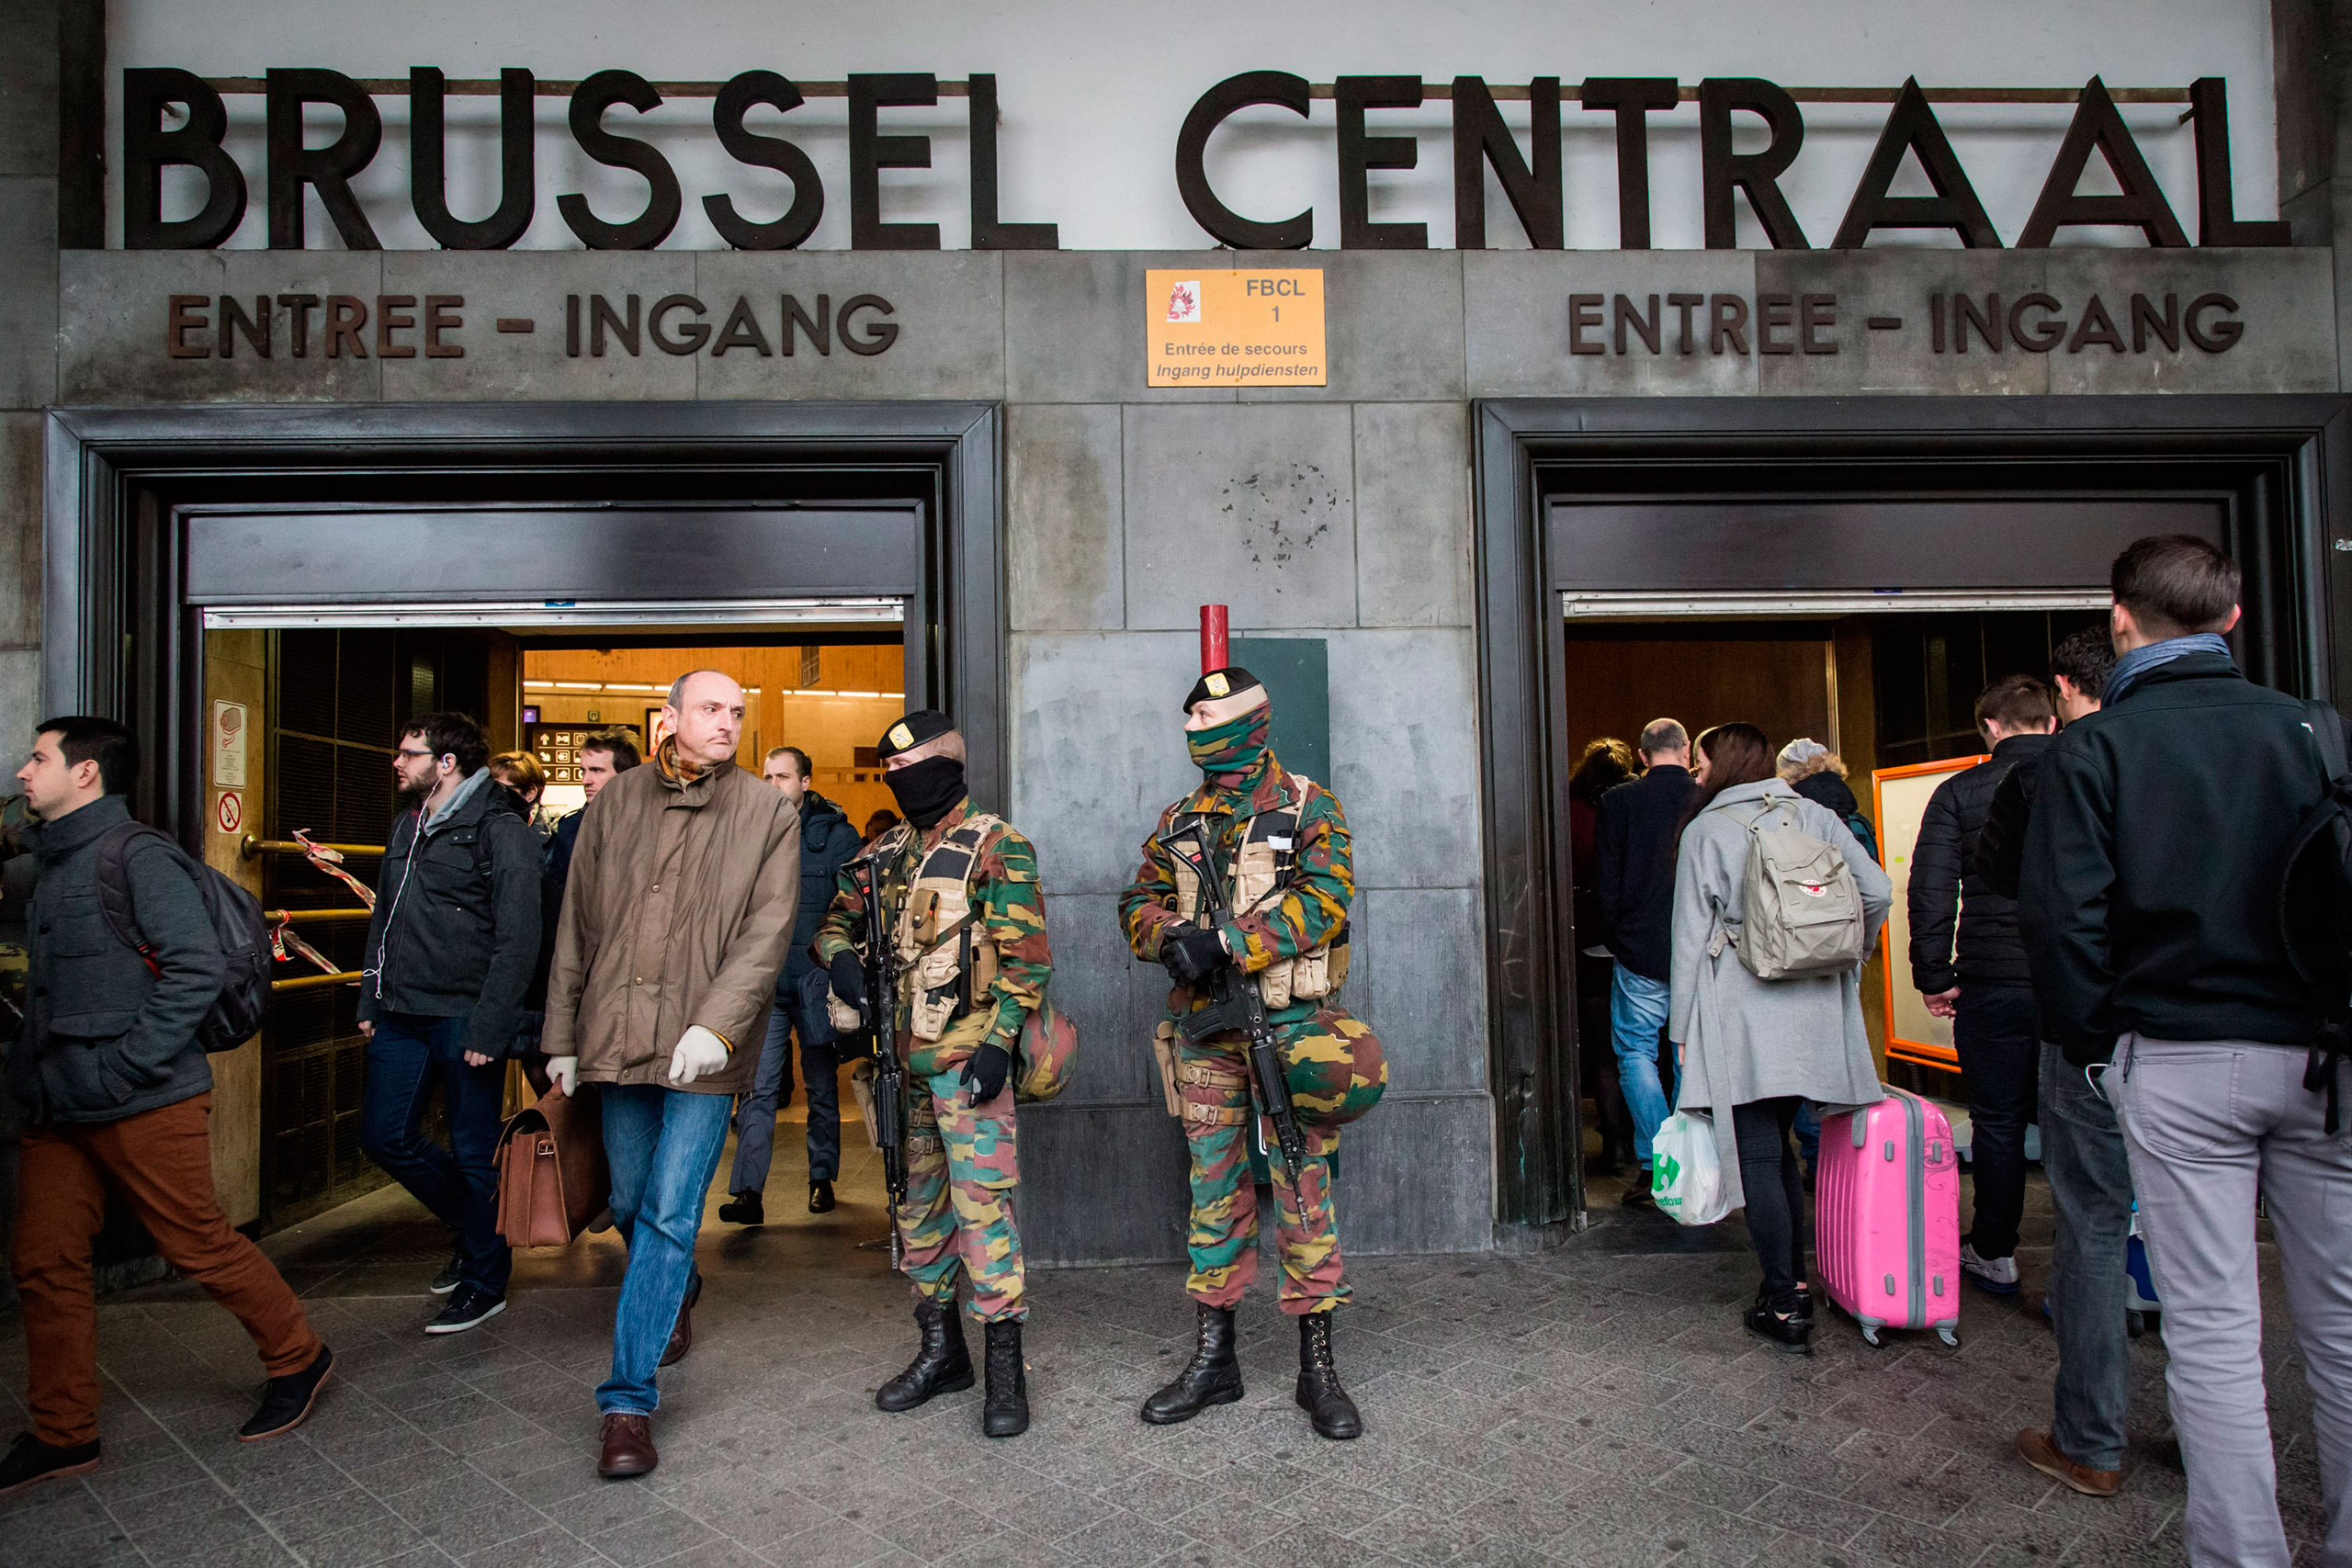 Soldiers stand guard at the entrance of Brussels Central Station, on March 23, 2016, one day after the terrorist attacks killed at least 31 people